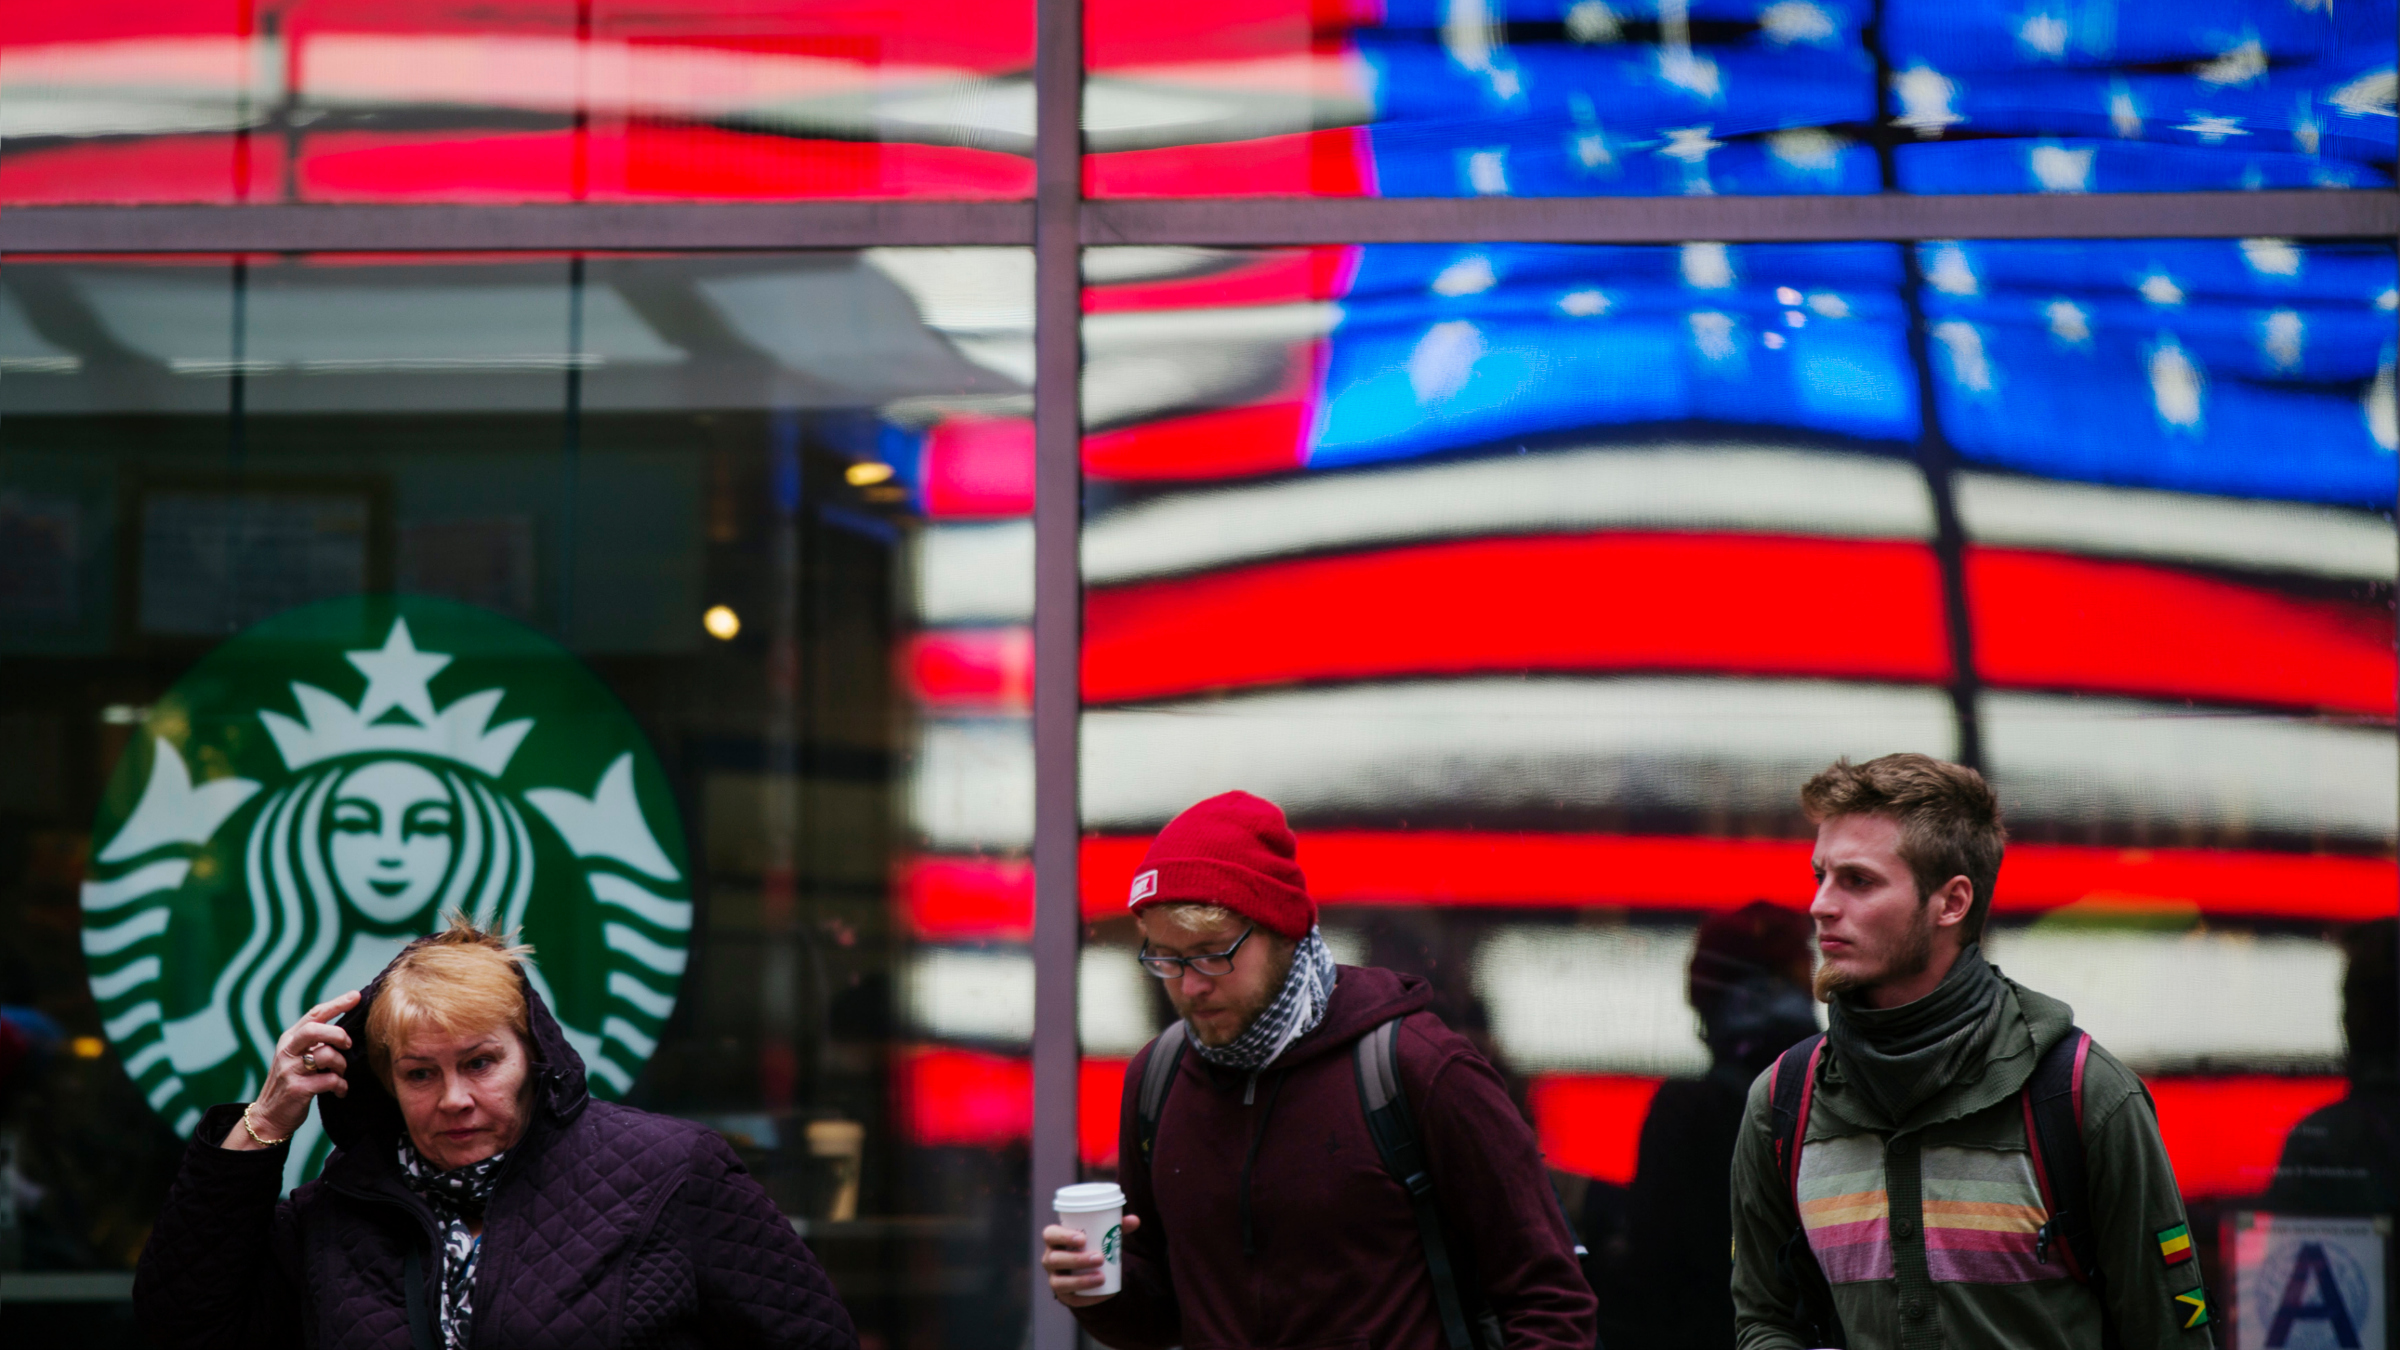 A woman pulls a hood over her head as she walks out of a Starbucks store into the cold wind at Times Square in New York.